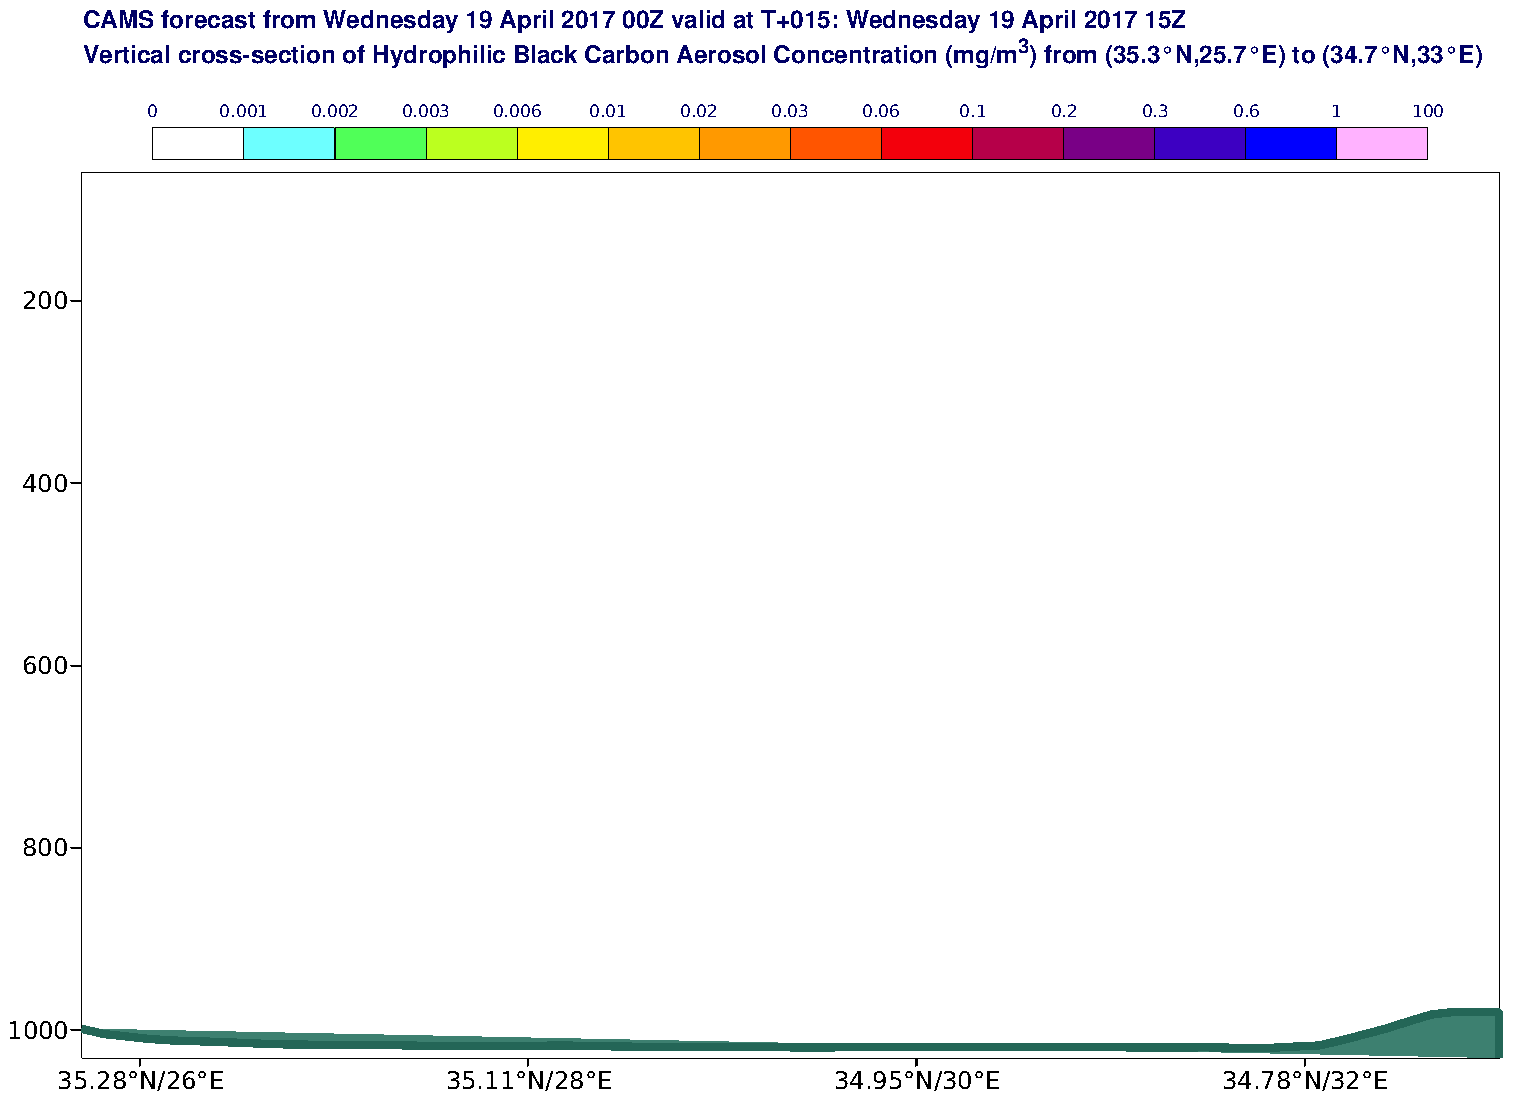 Vertical cross-section of Hydrophilic Black Carbon Aerosol Concentration (mg/m3) valid at T15 - 2017-04-19 15:00